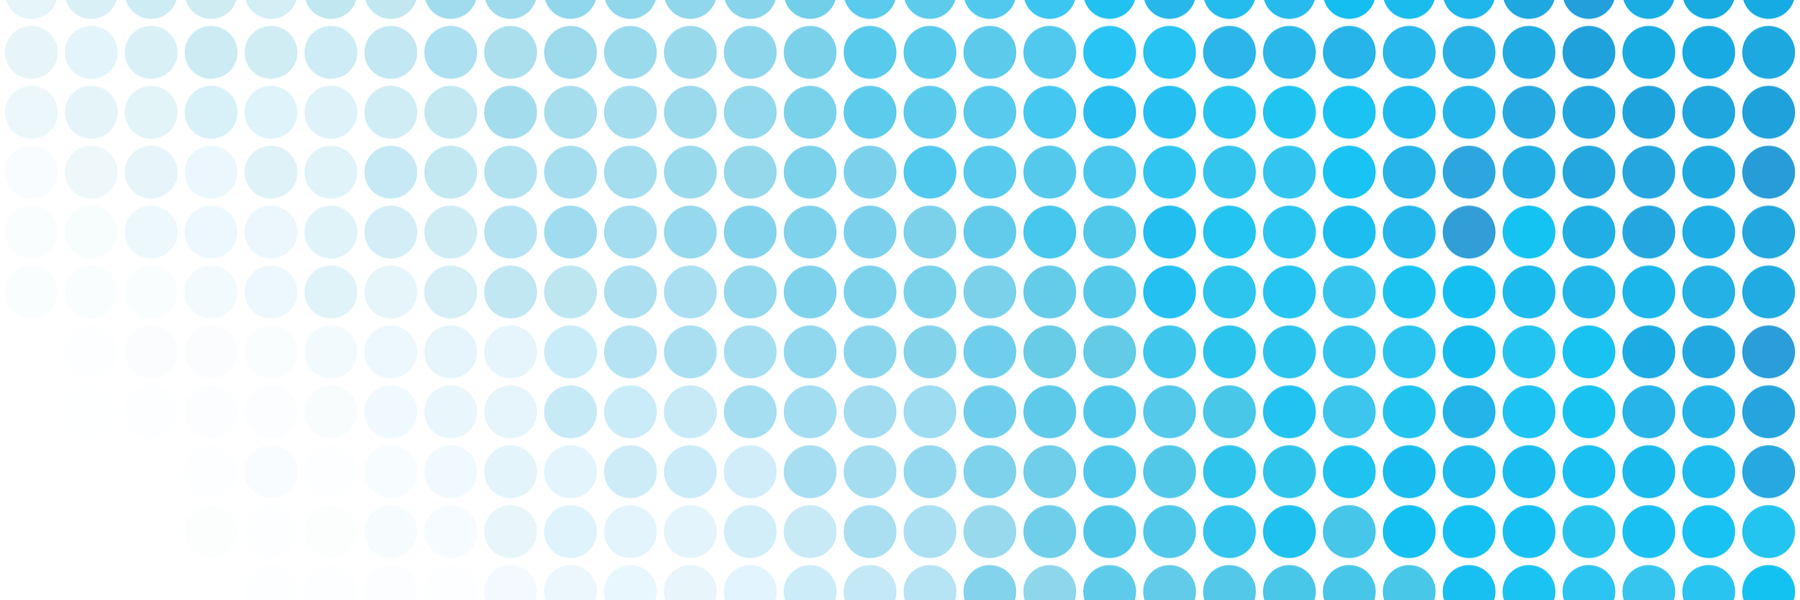 Radiated pattern of blue dots.